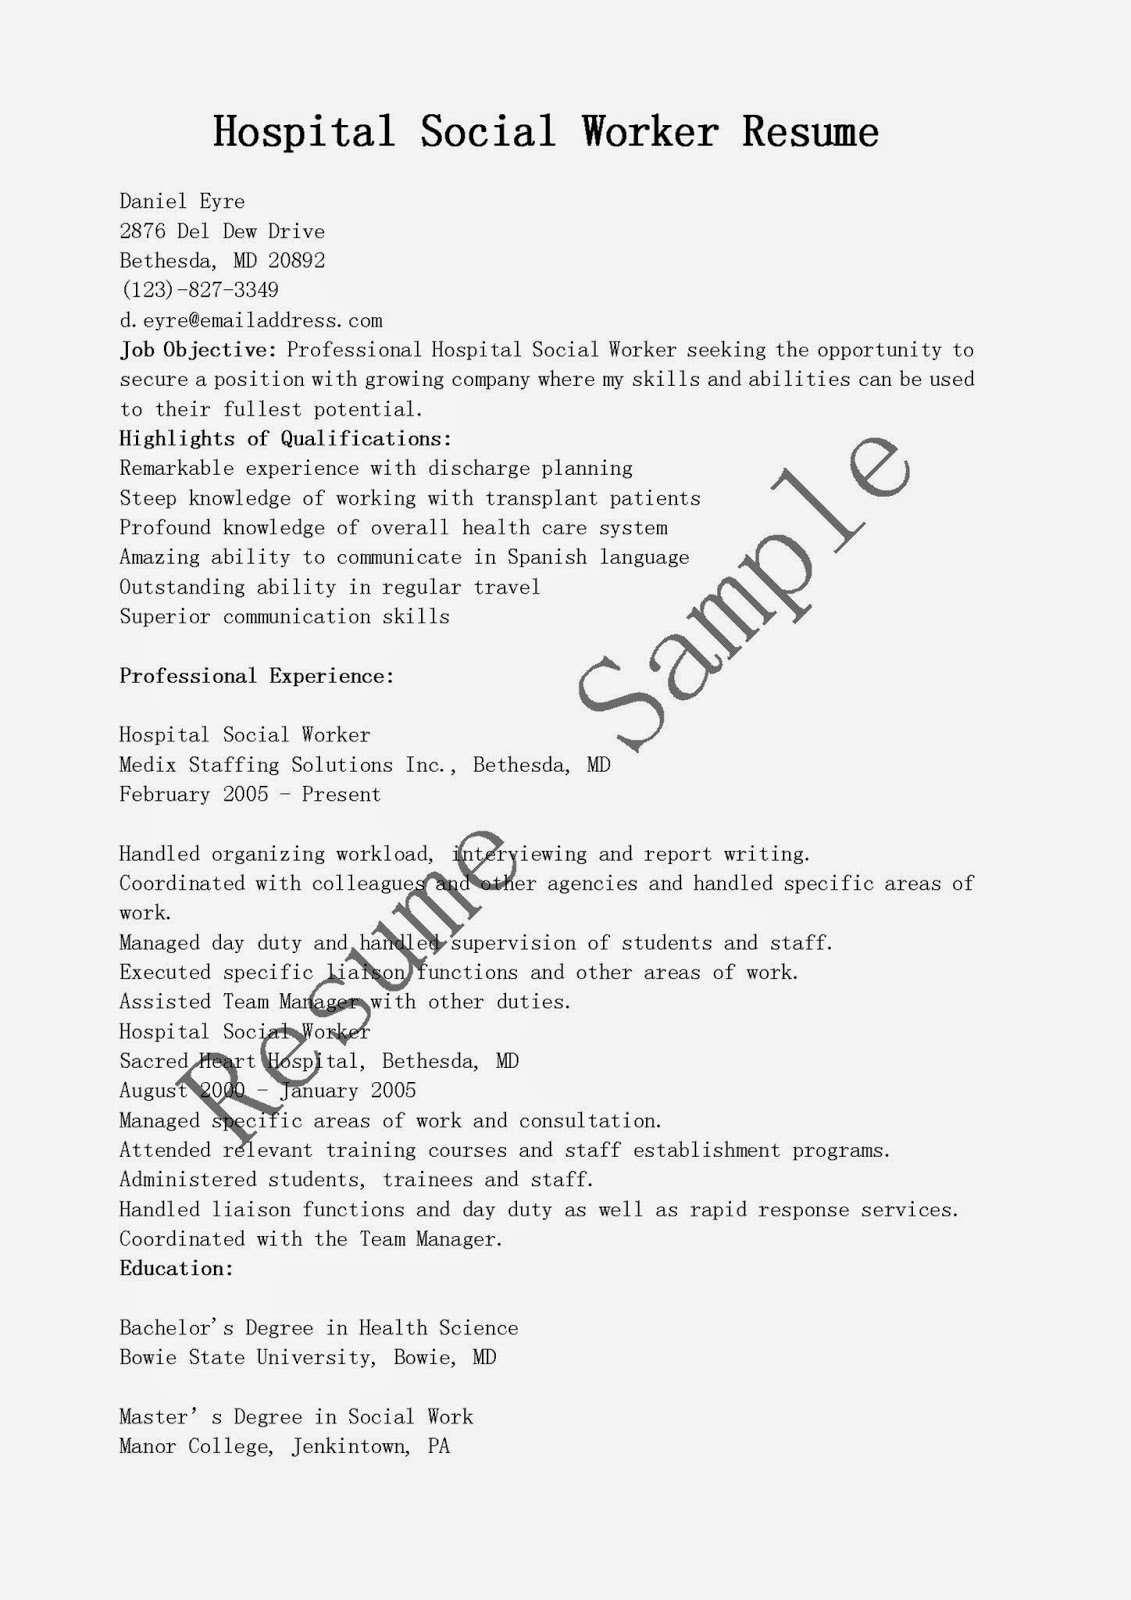 hospital social worker resume sample